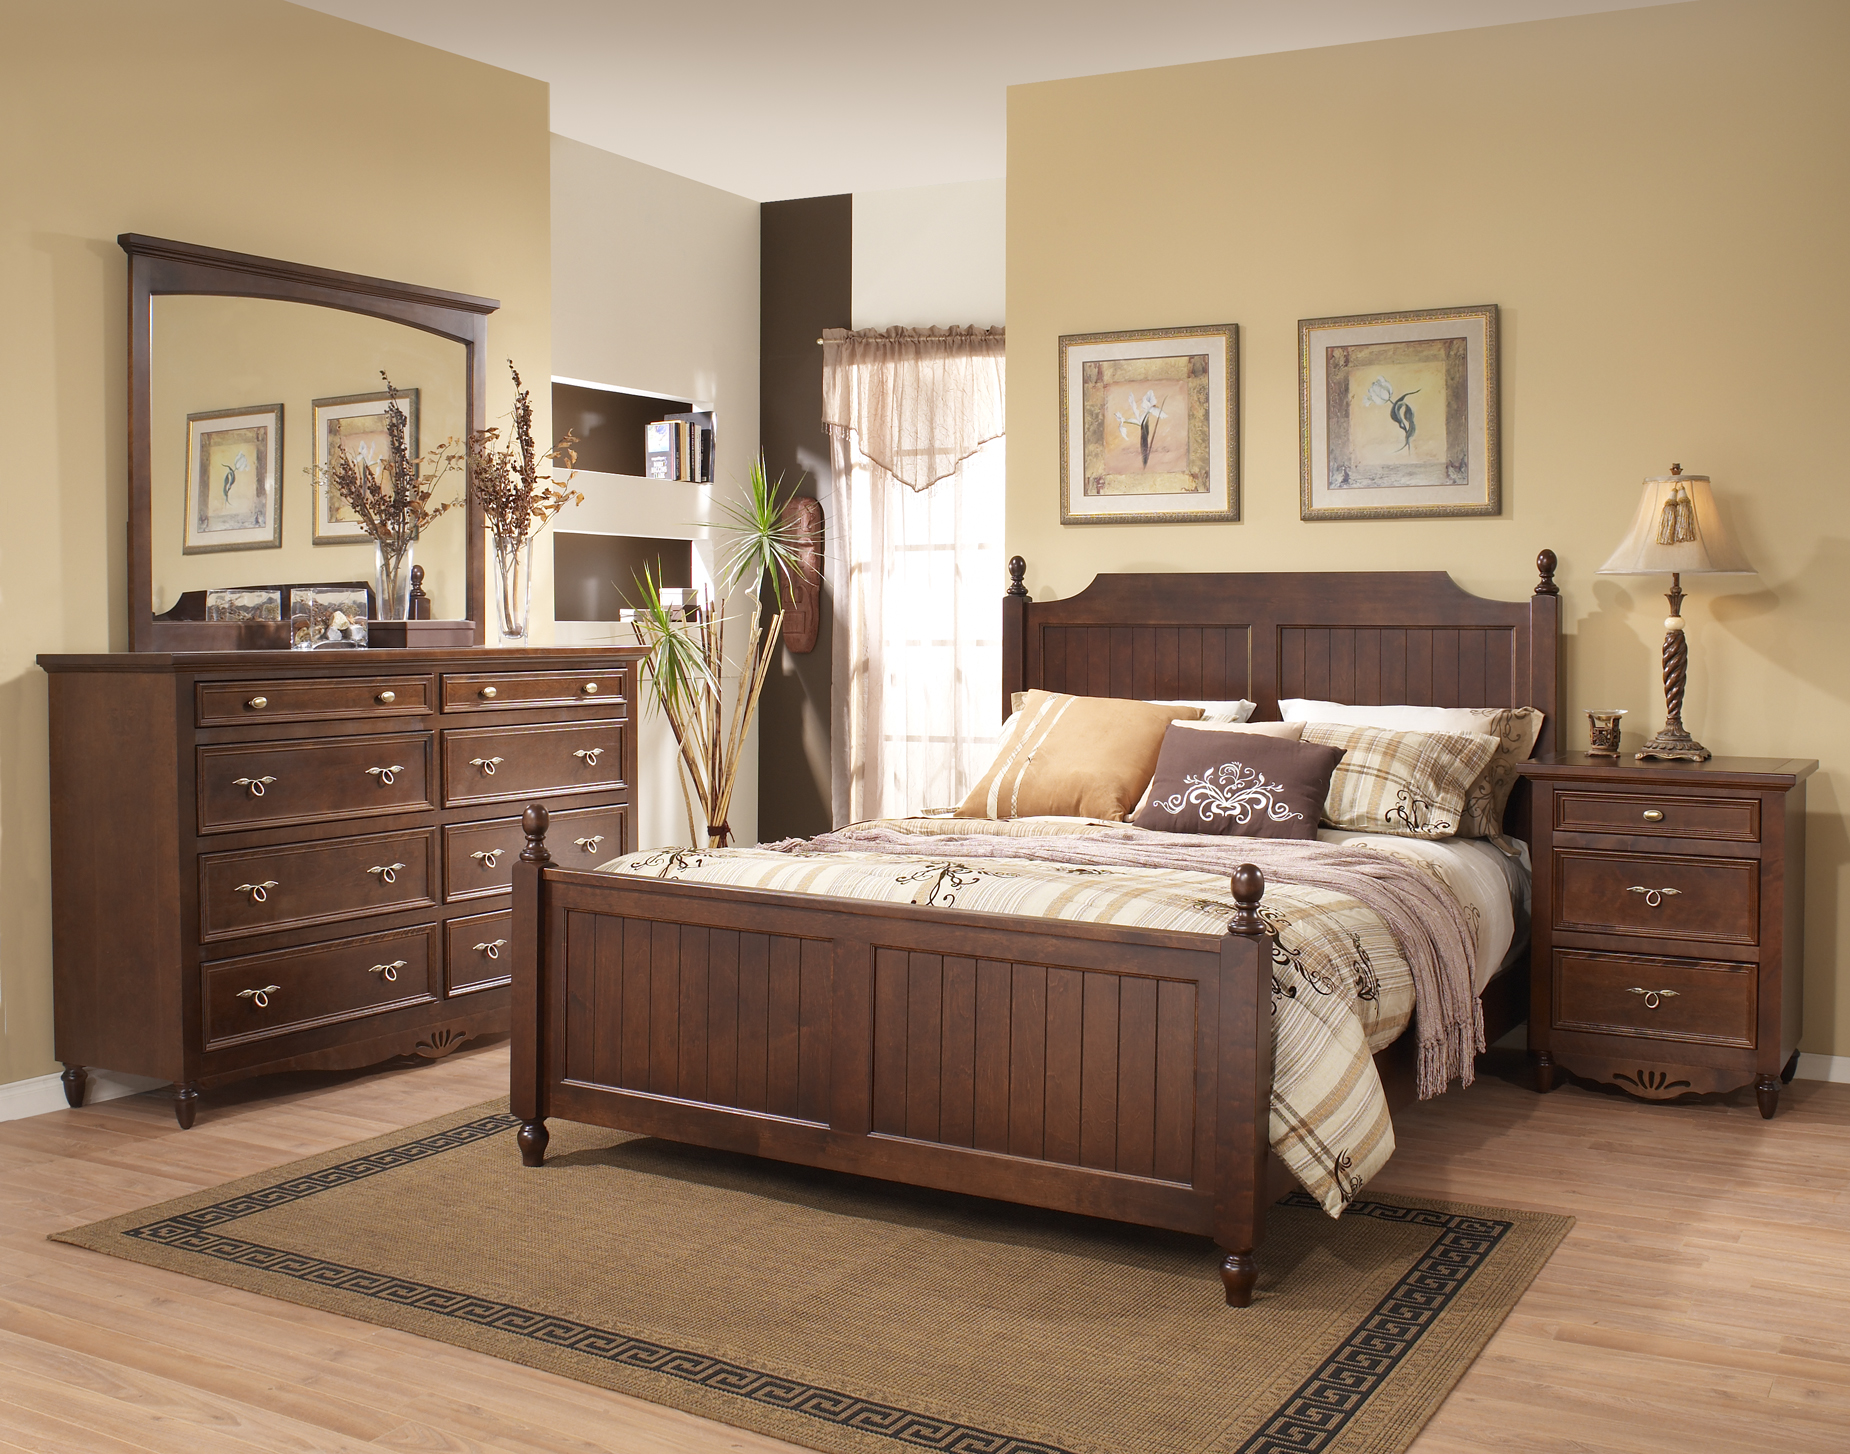 elevation of avenue bergeron saint agapit qc g0s 1z0 canada maplogs. Black Bedroom Furniture Sets. Home Design Ideas